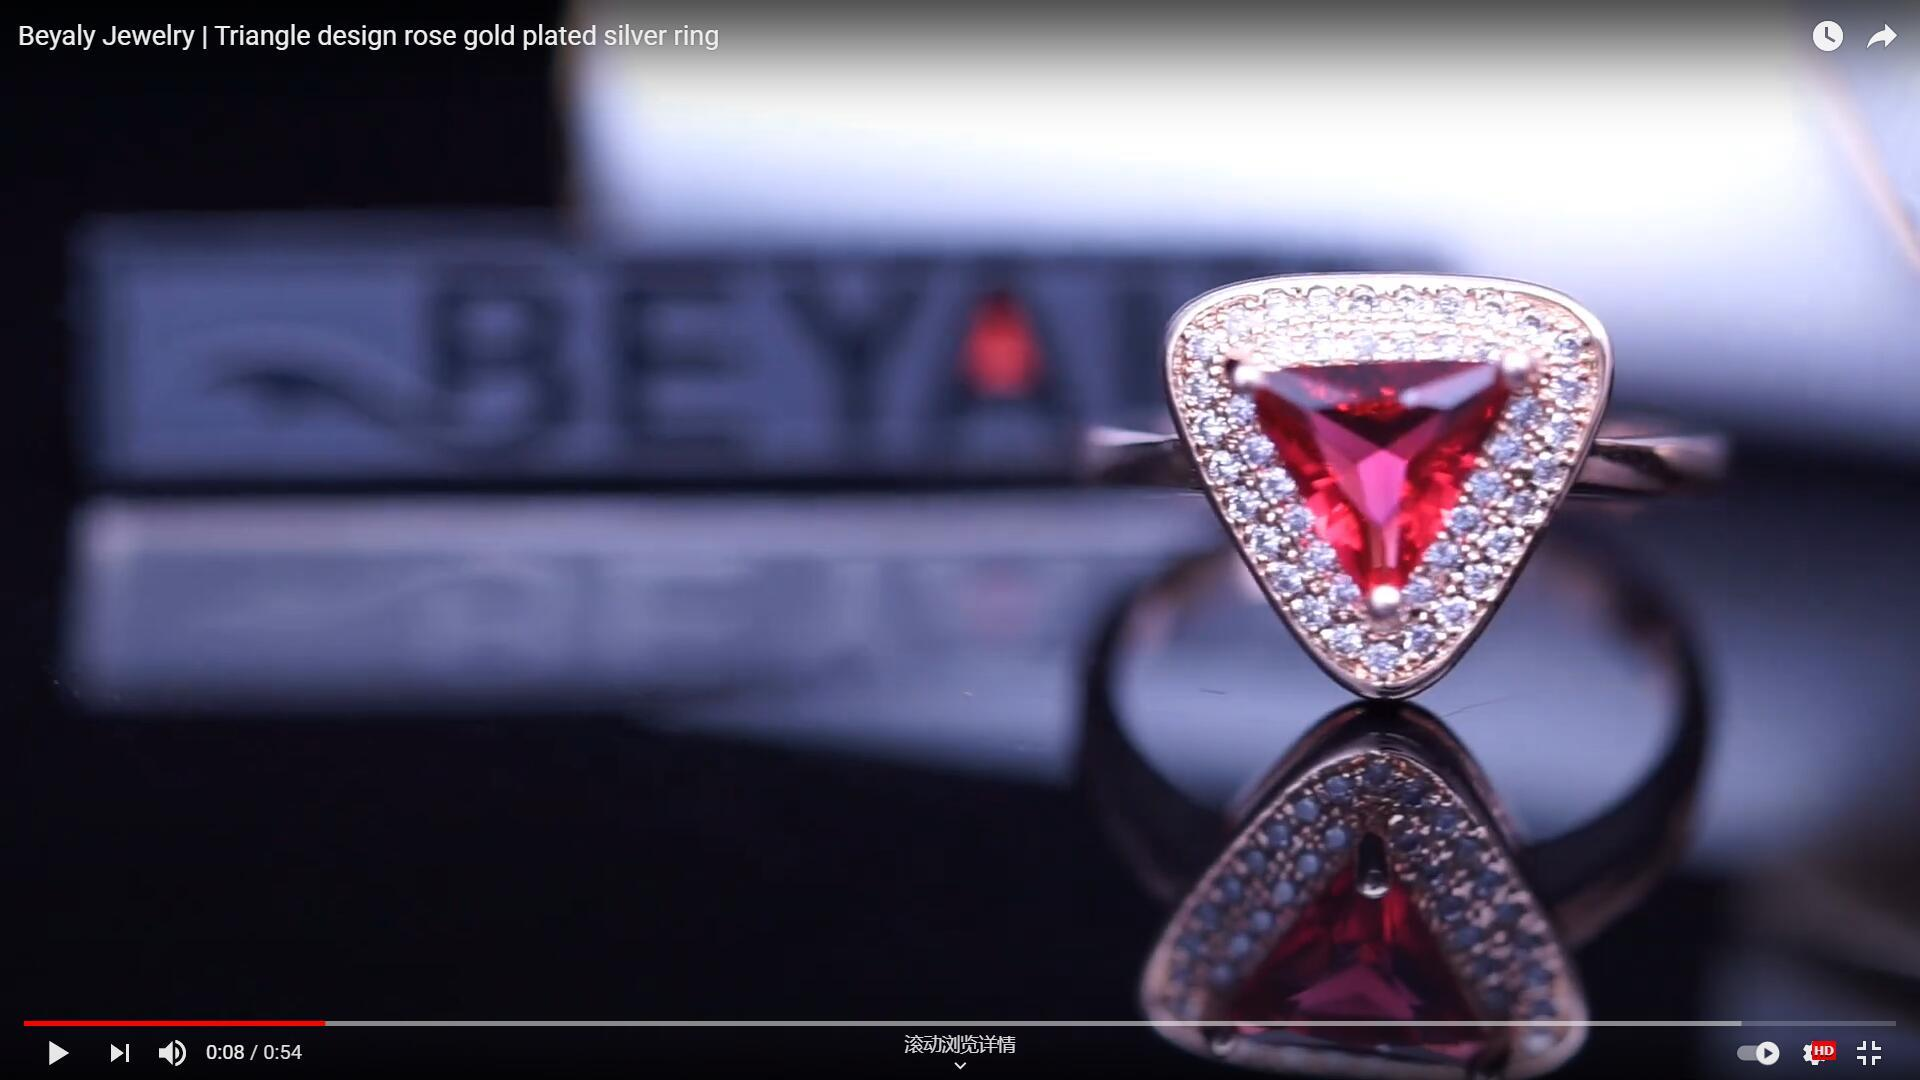 Beyaly Jewelry | Triangle design rose gold plated silver ring